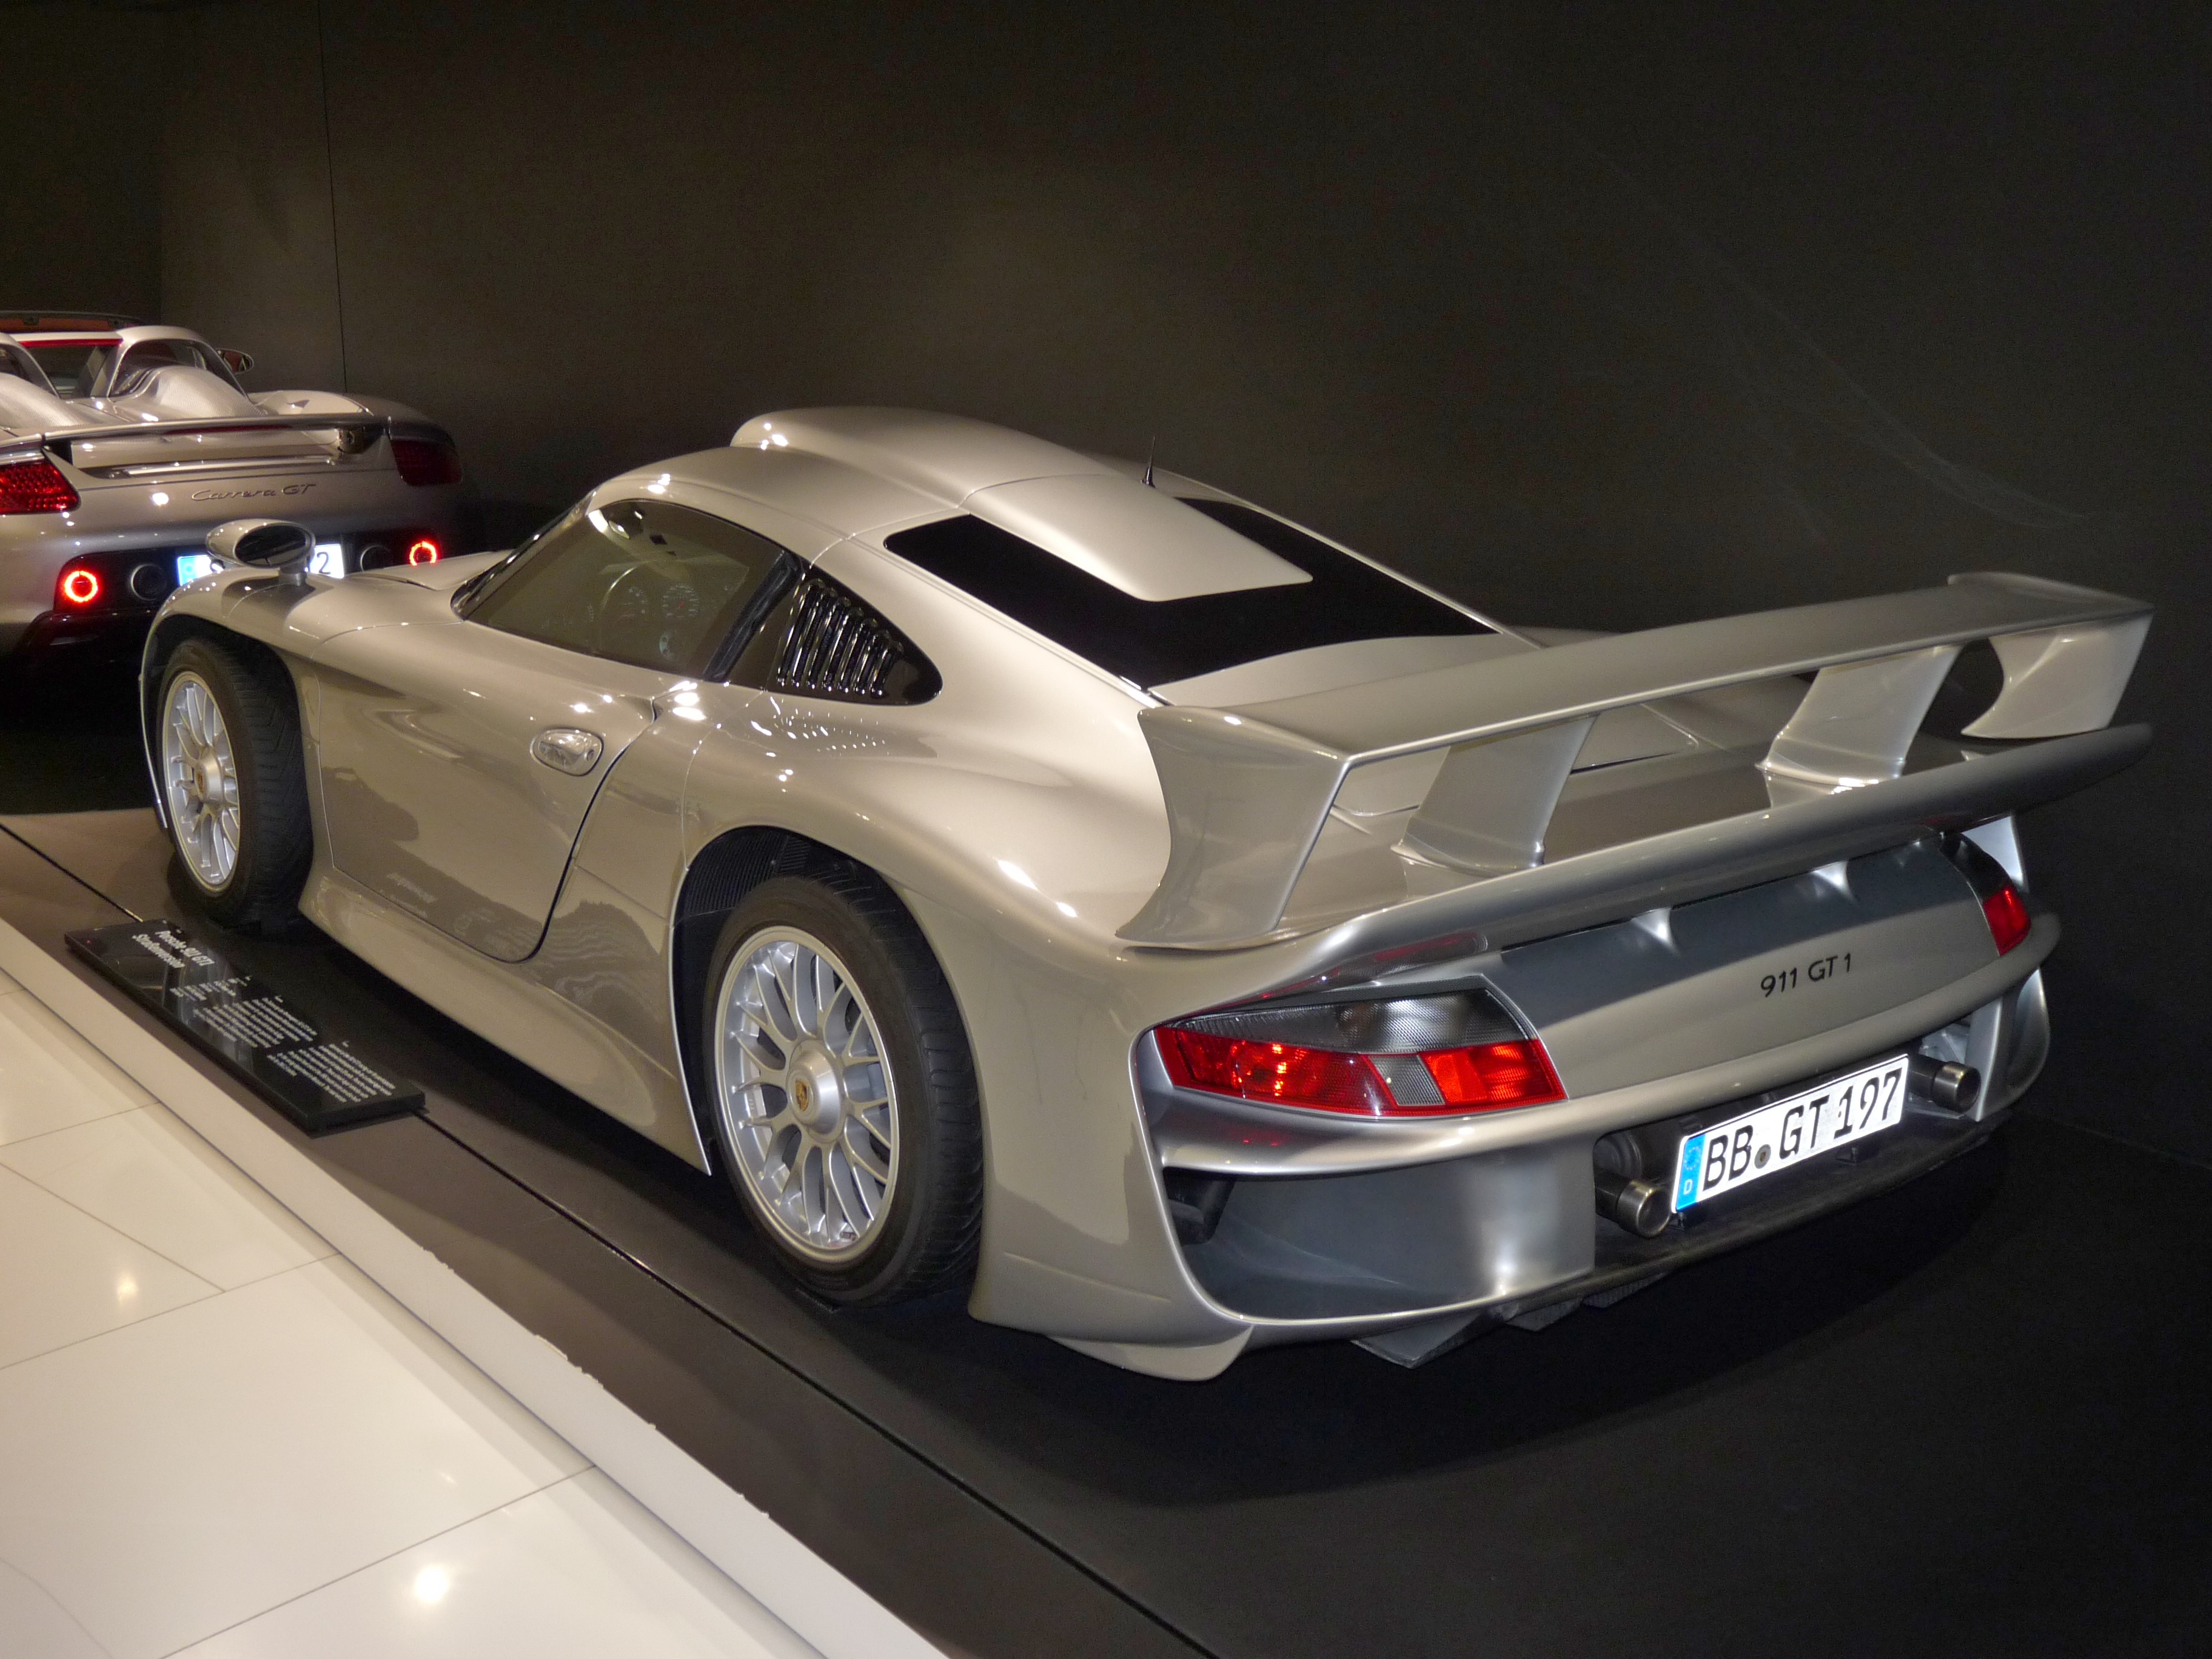 porsche 39 s insane chirping 911 gt1 evo mid engine race car is a joy to drive. Black Bedroom Furniture Sets. Home Design Ideas